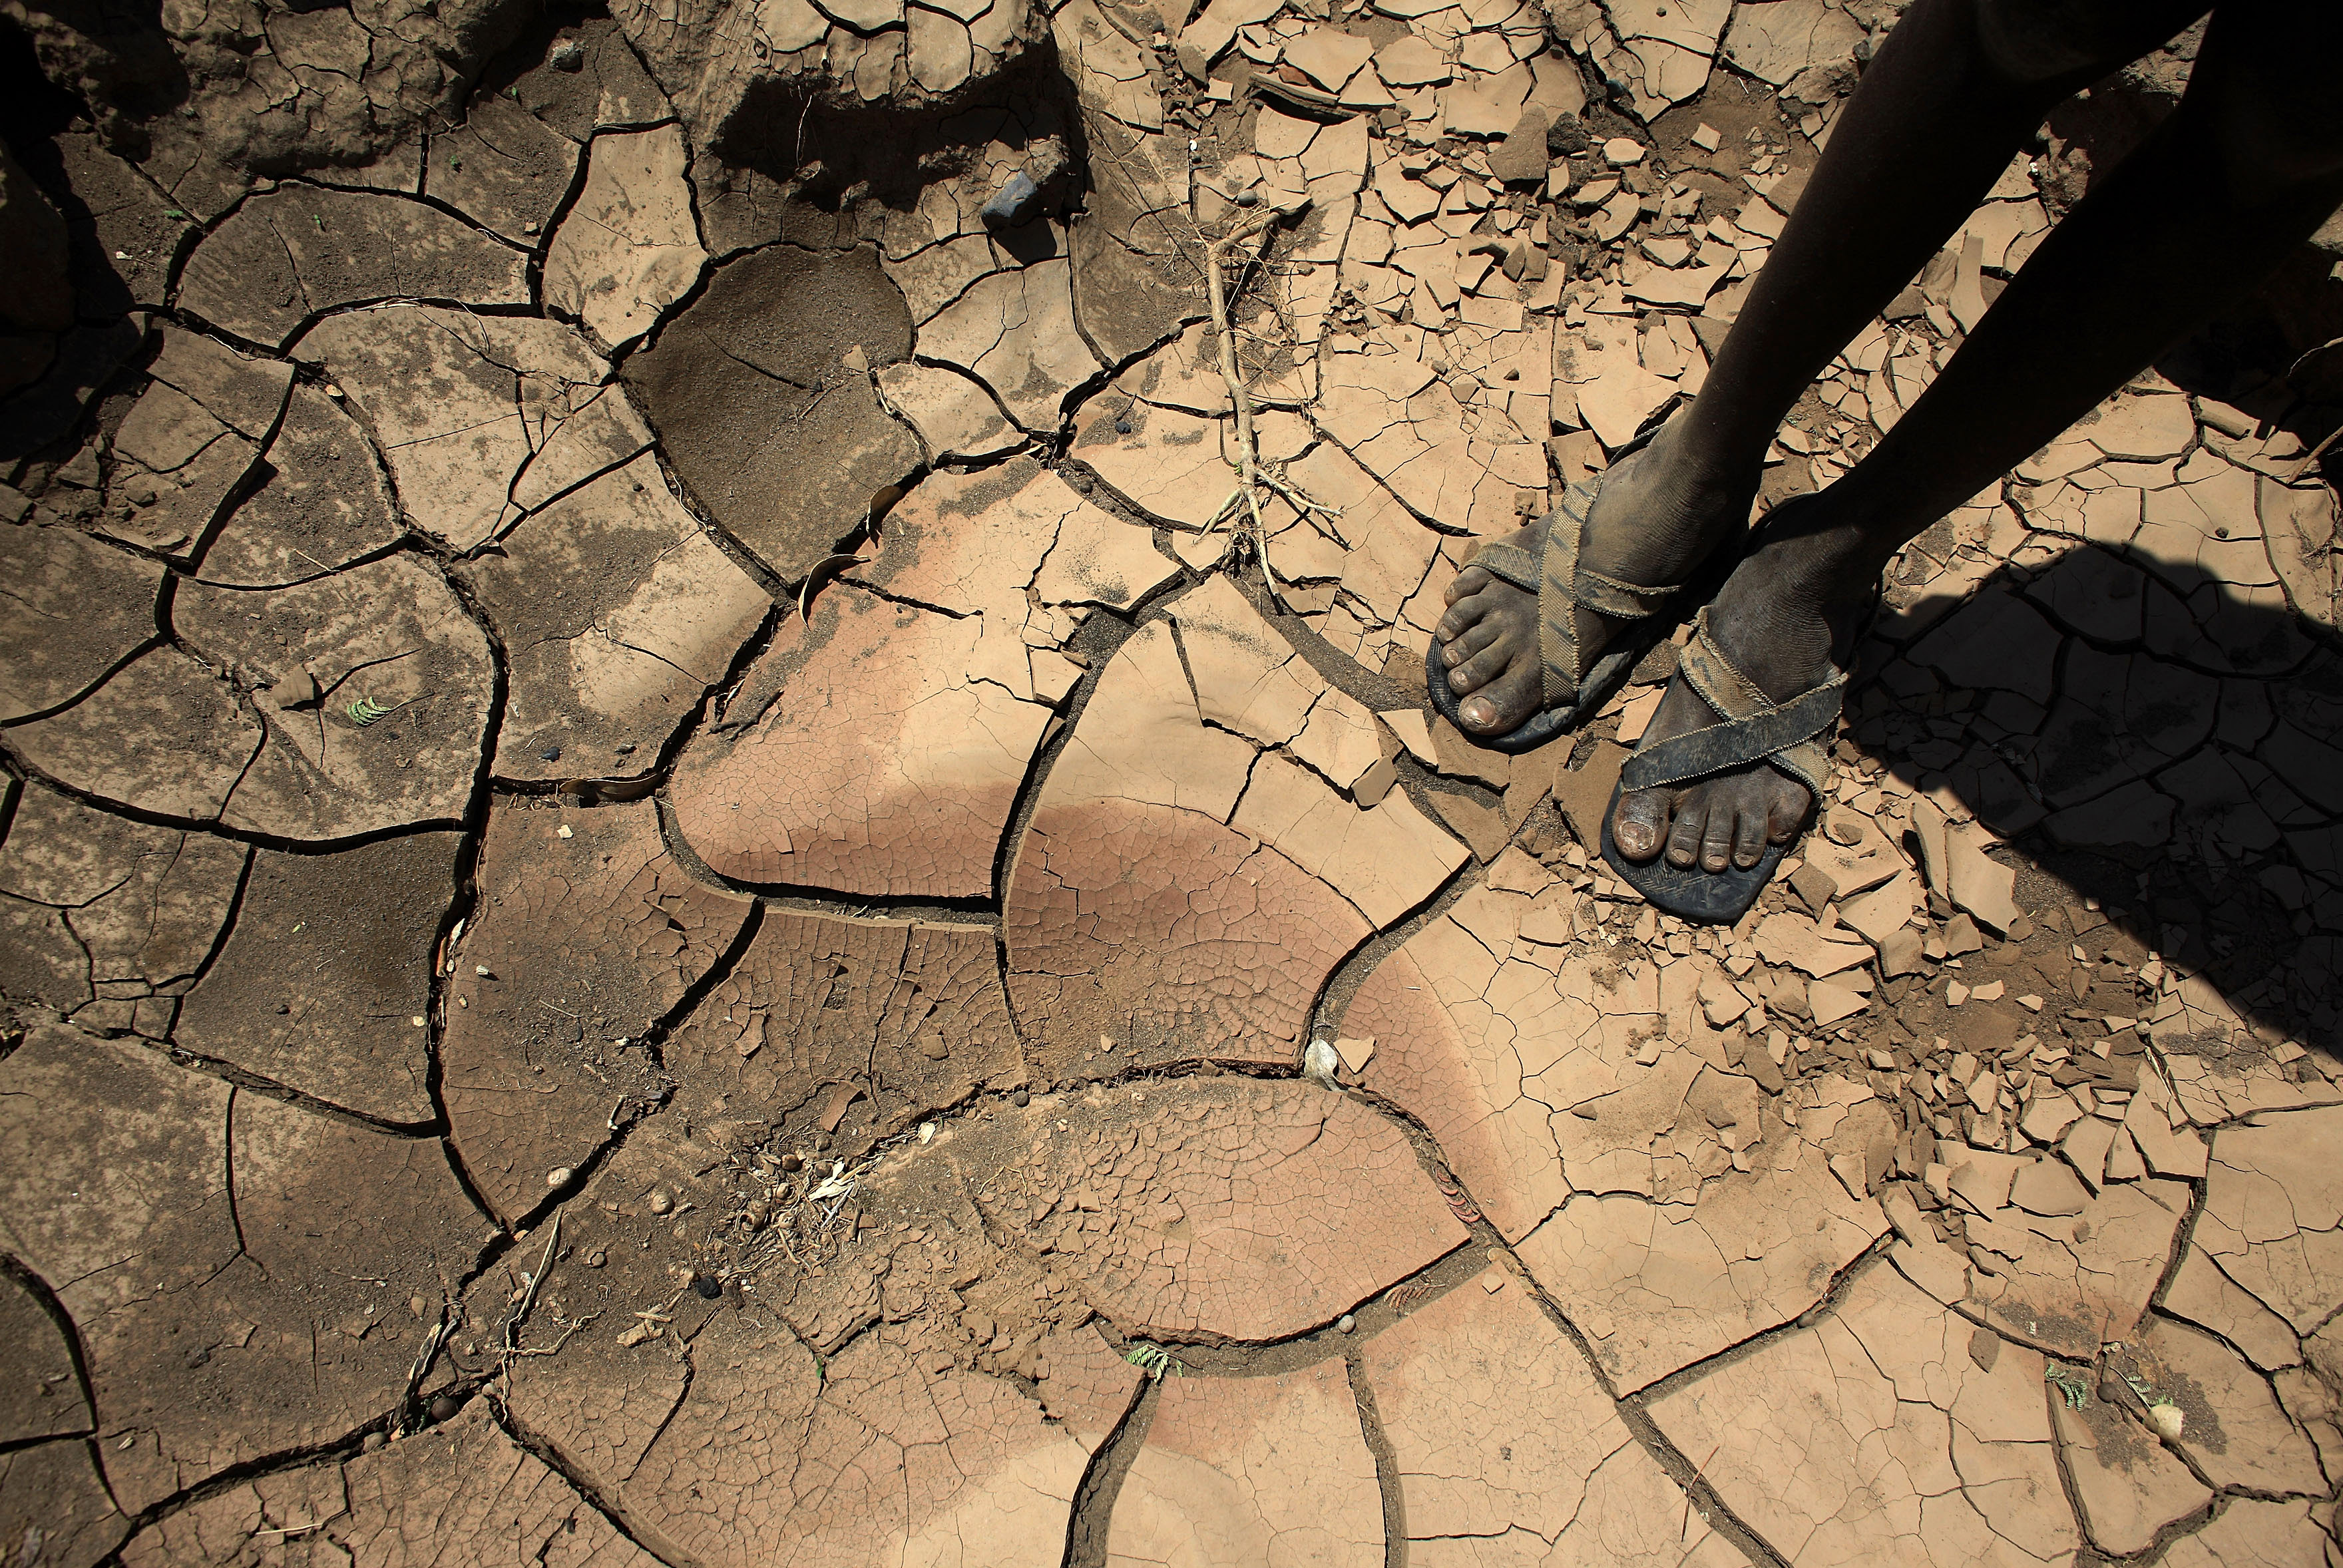 Climate change has already made poor countries poorer and rich countries richer